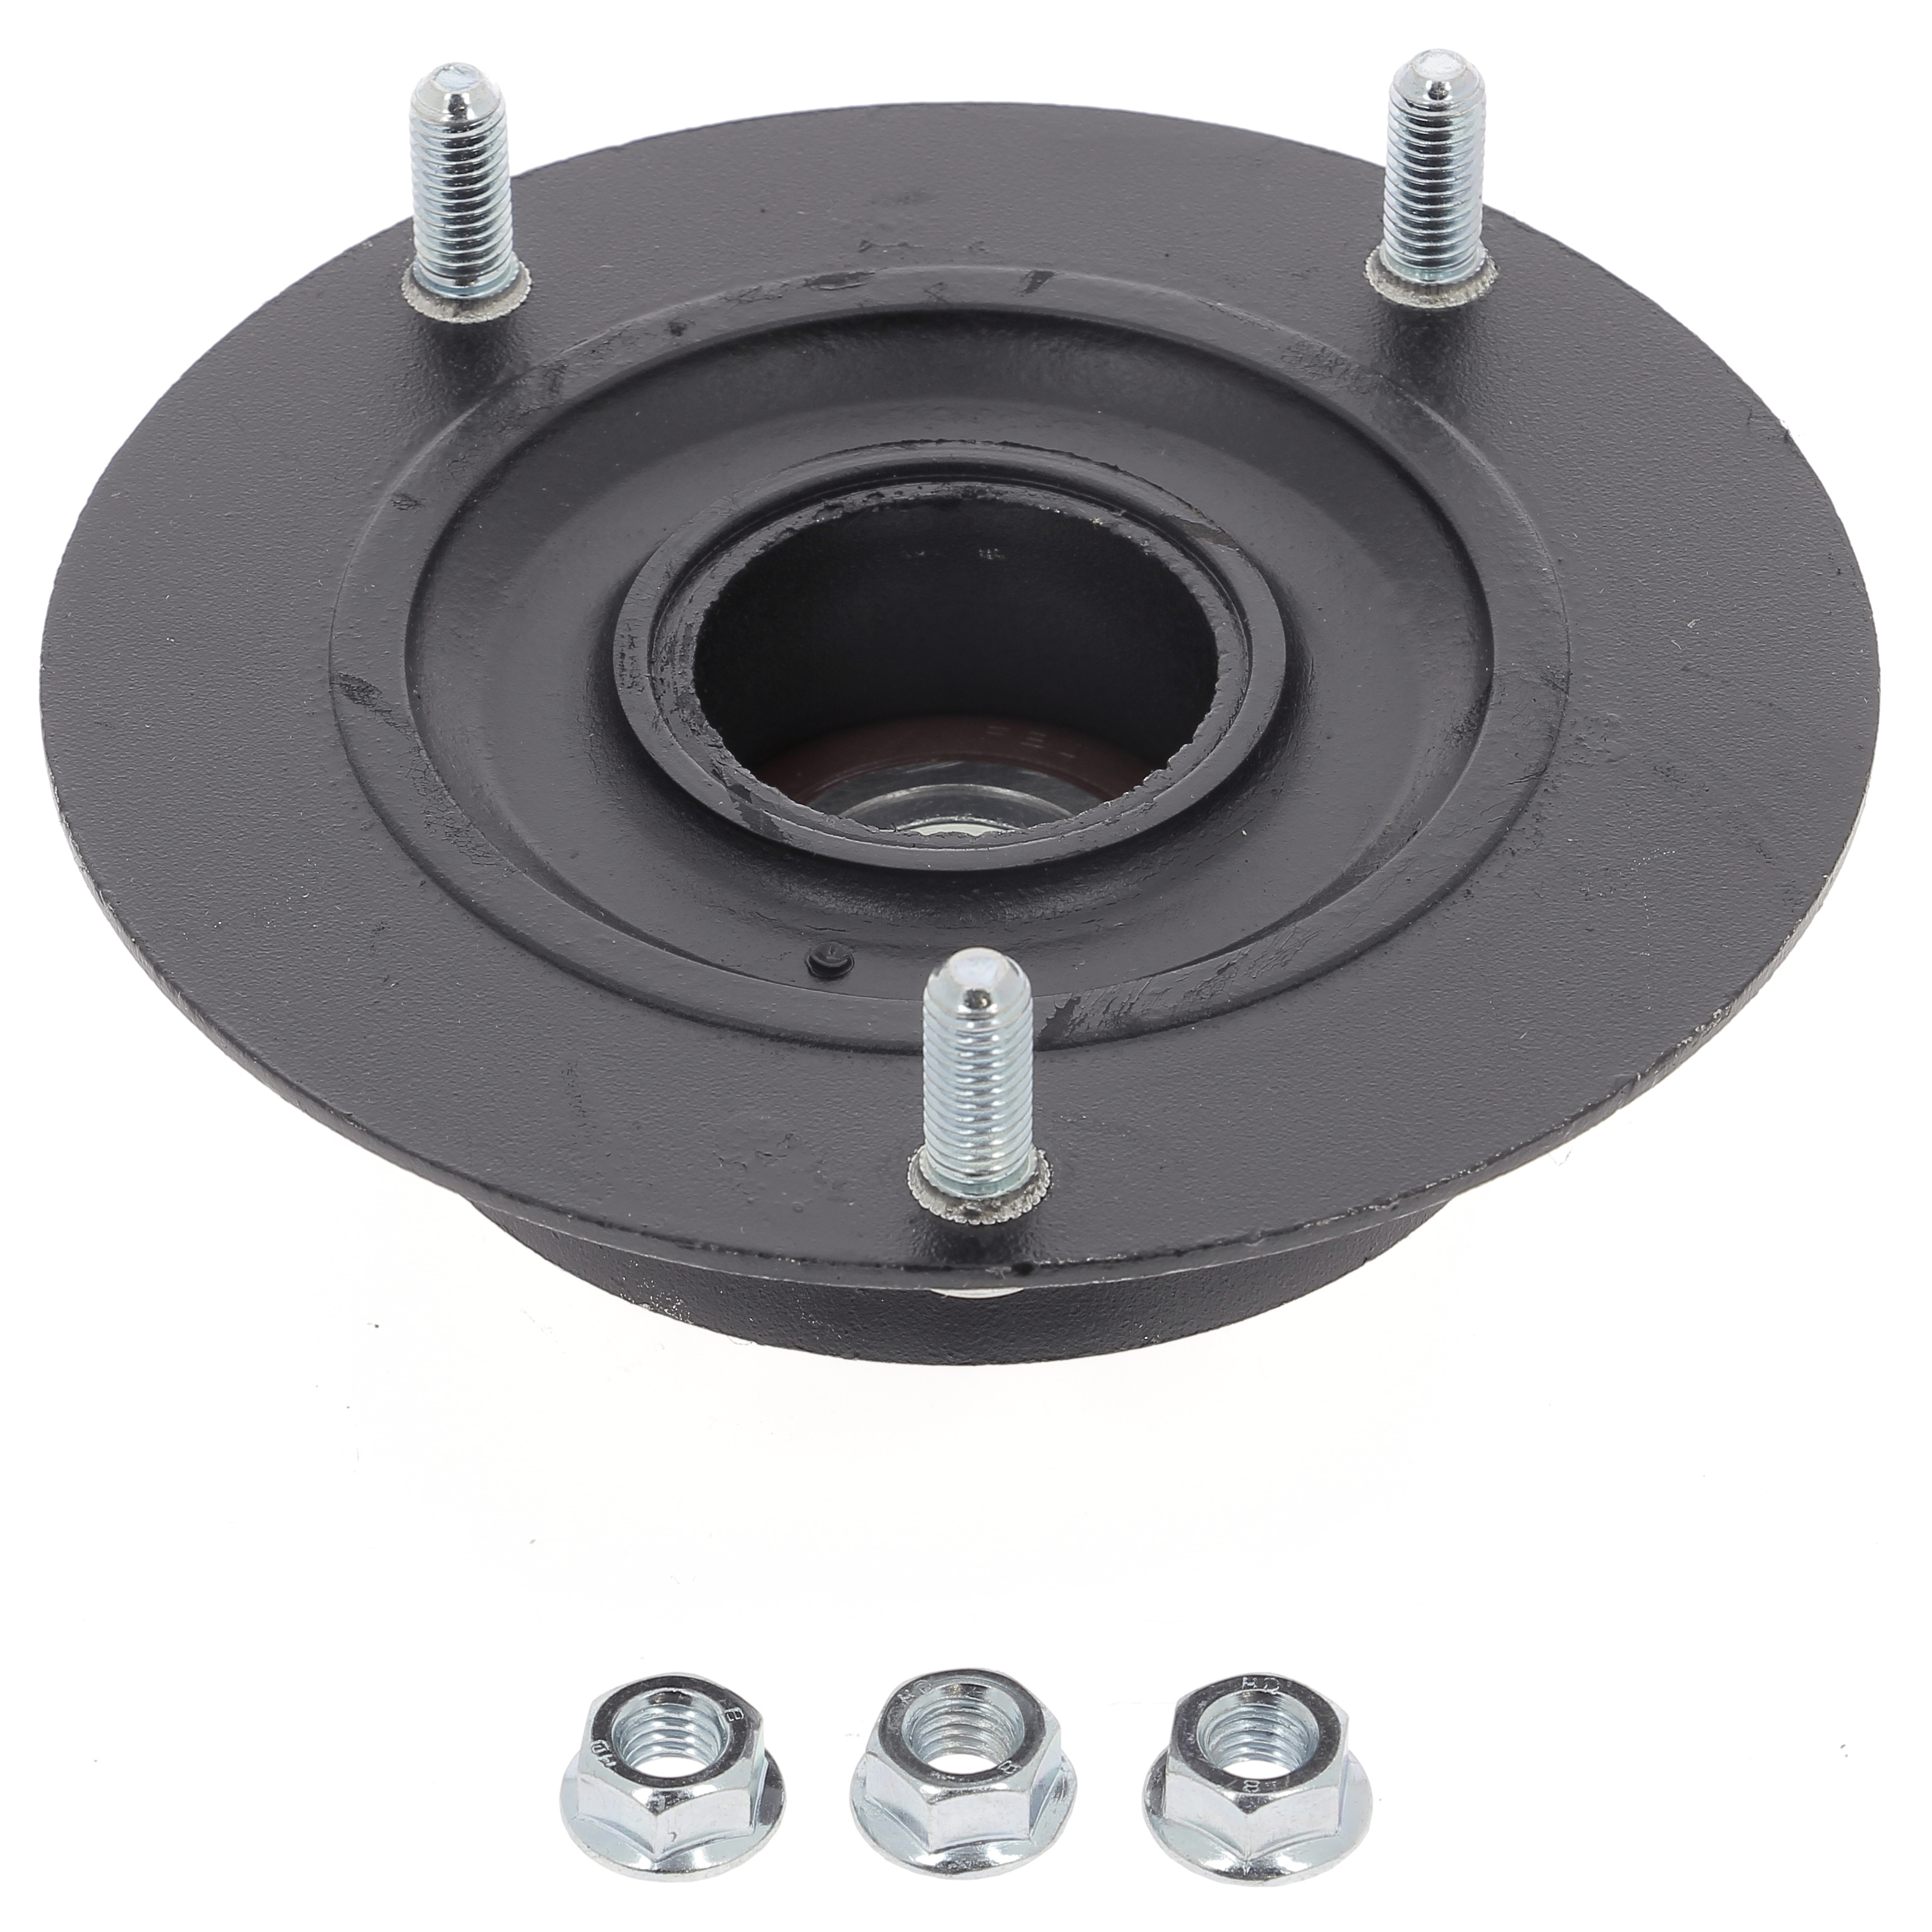 Details about KYB Strut Top Mount KSM5050 fits Volvo 240 2 1 (242,244)  74kw, 2 1 (242,244)